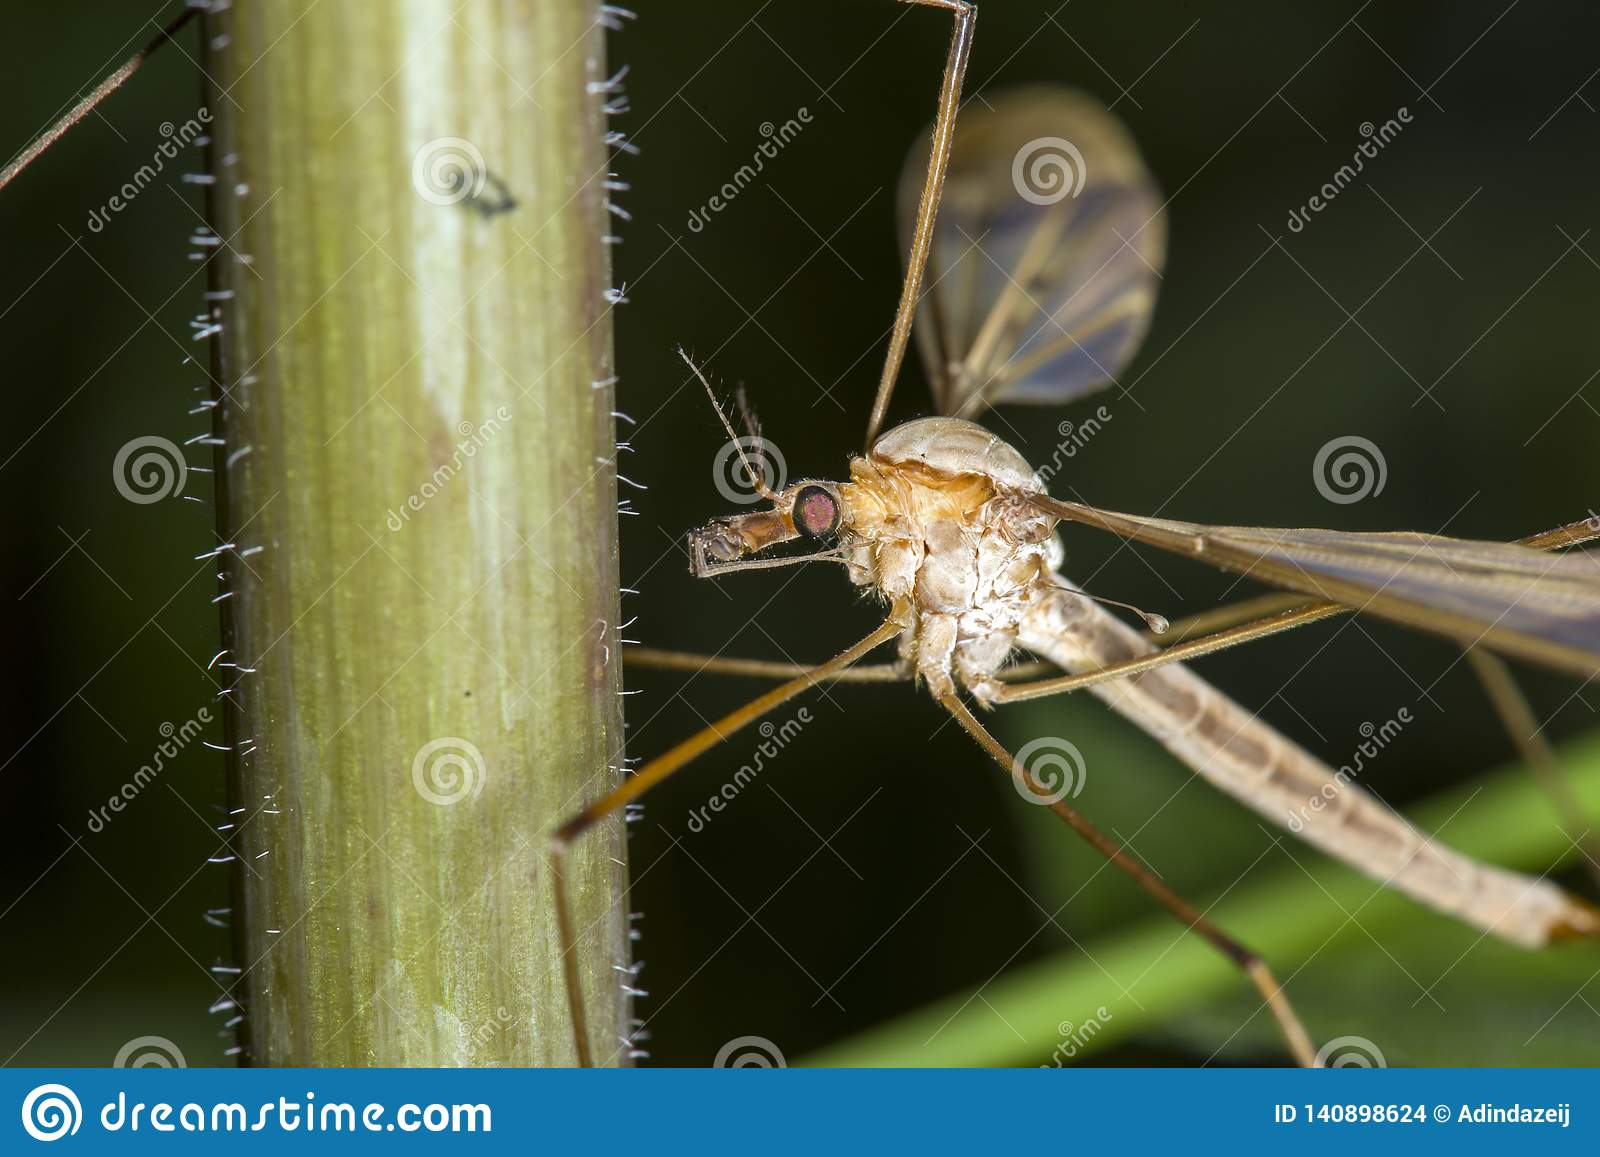 Macro image of mosquitoes on plant